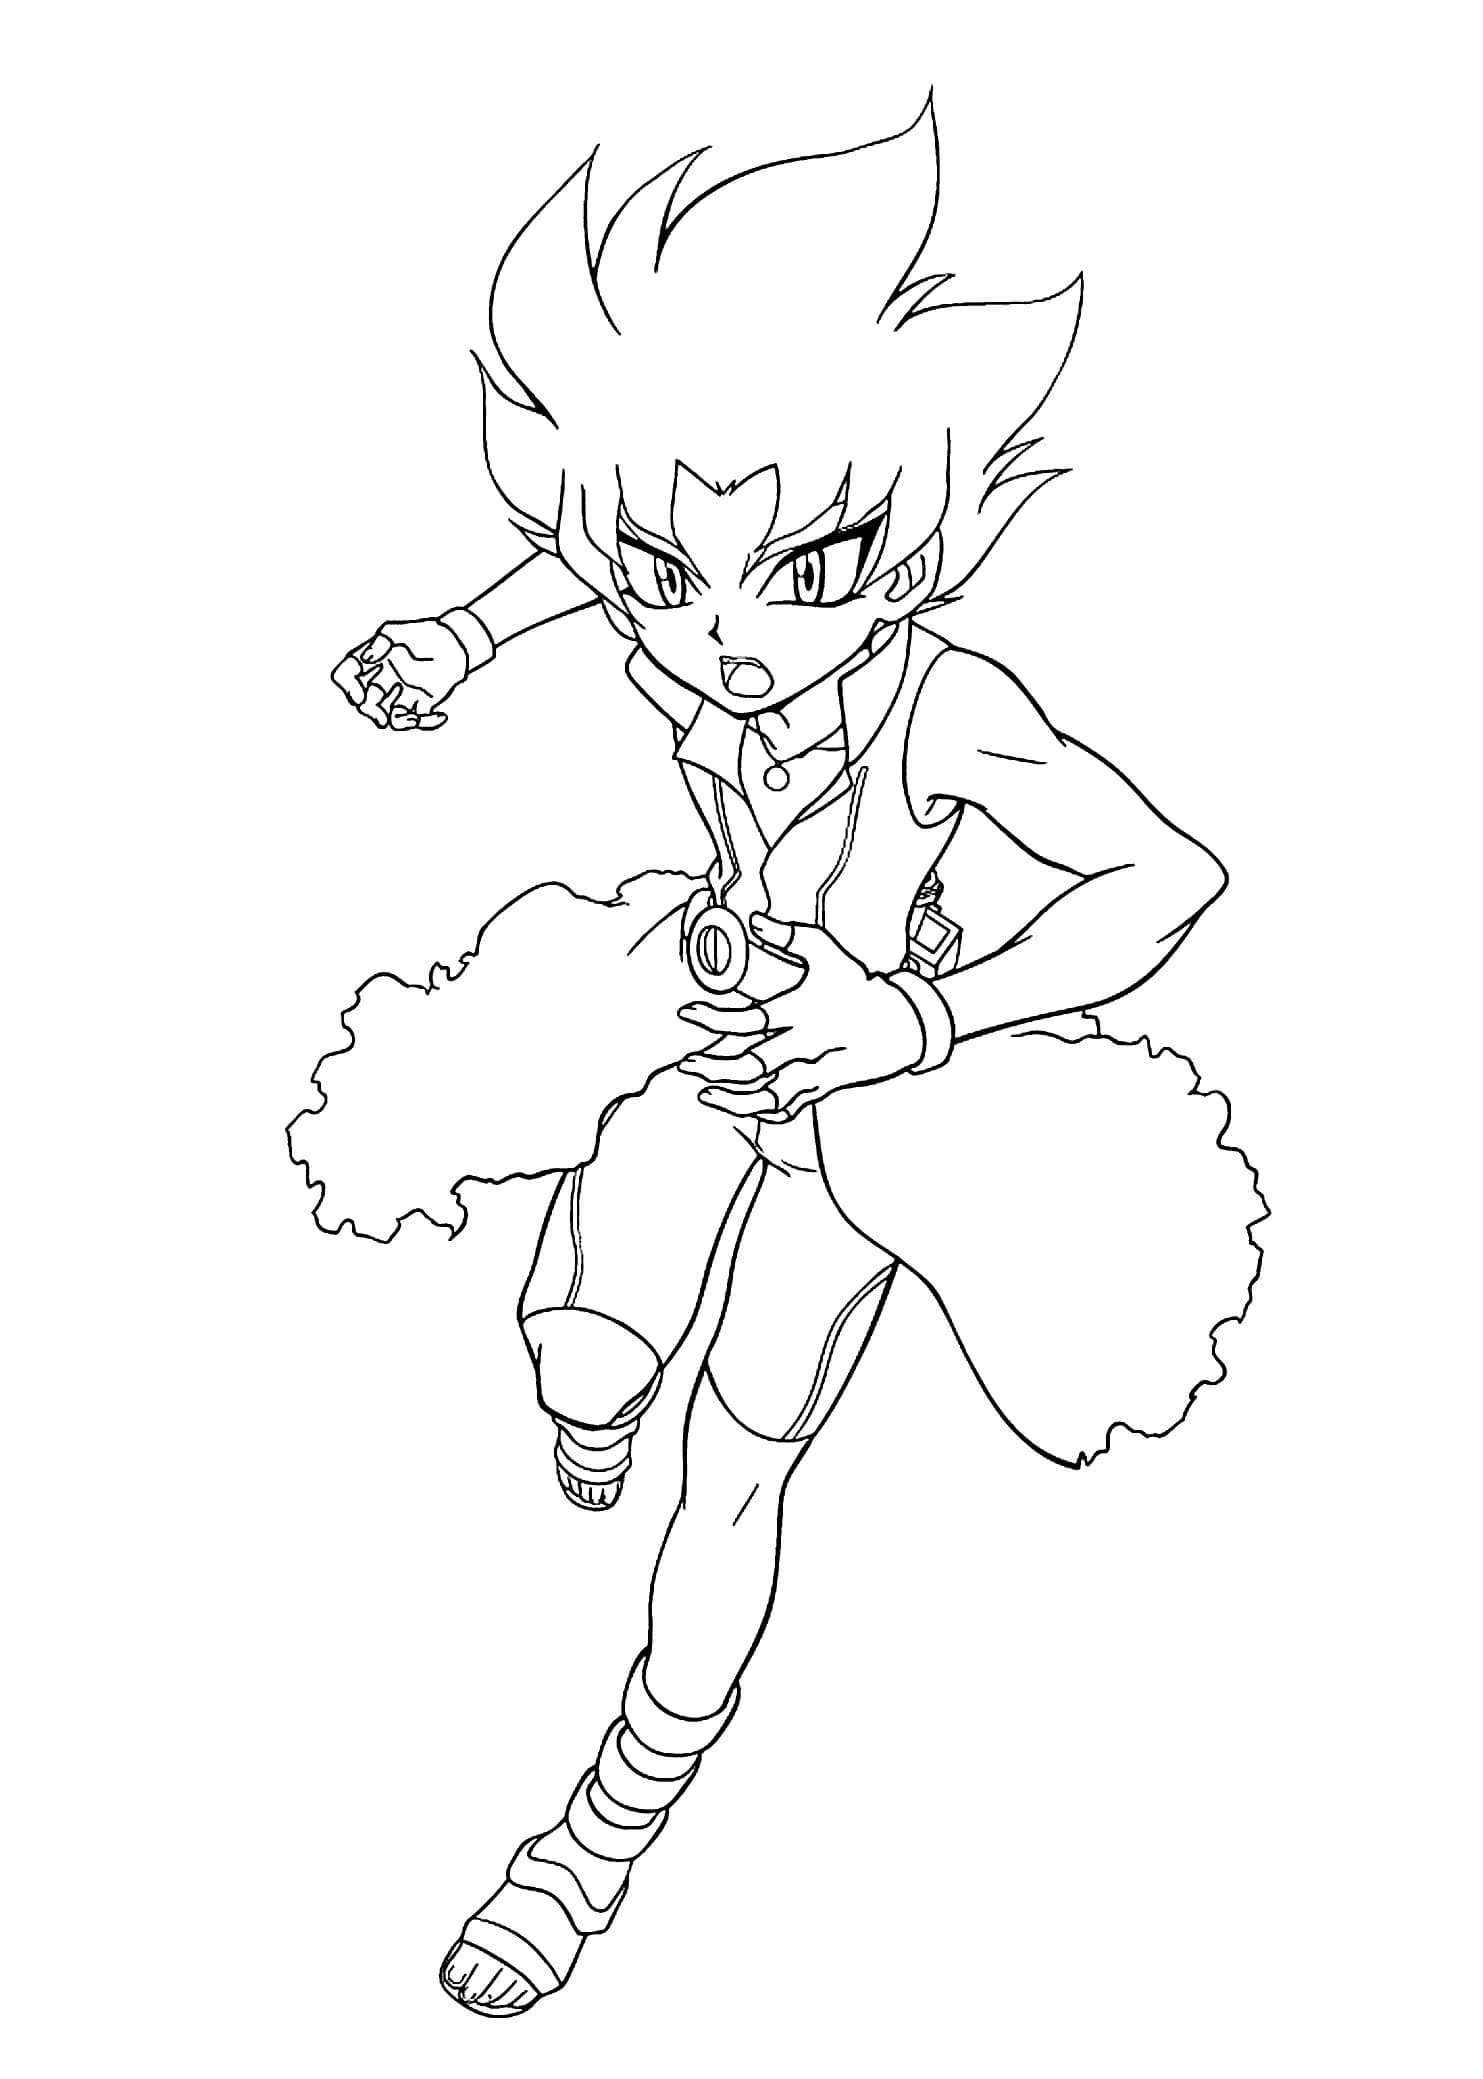 beyblade characters coloring pages beyblade coloring pages getcoloringpagescom characters pages beyblade coloring